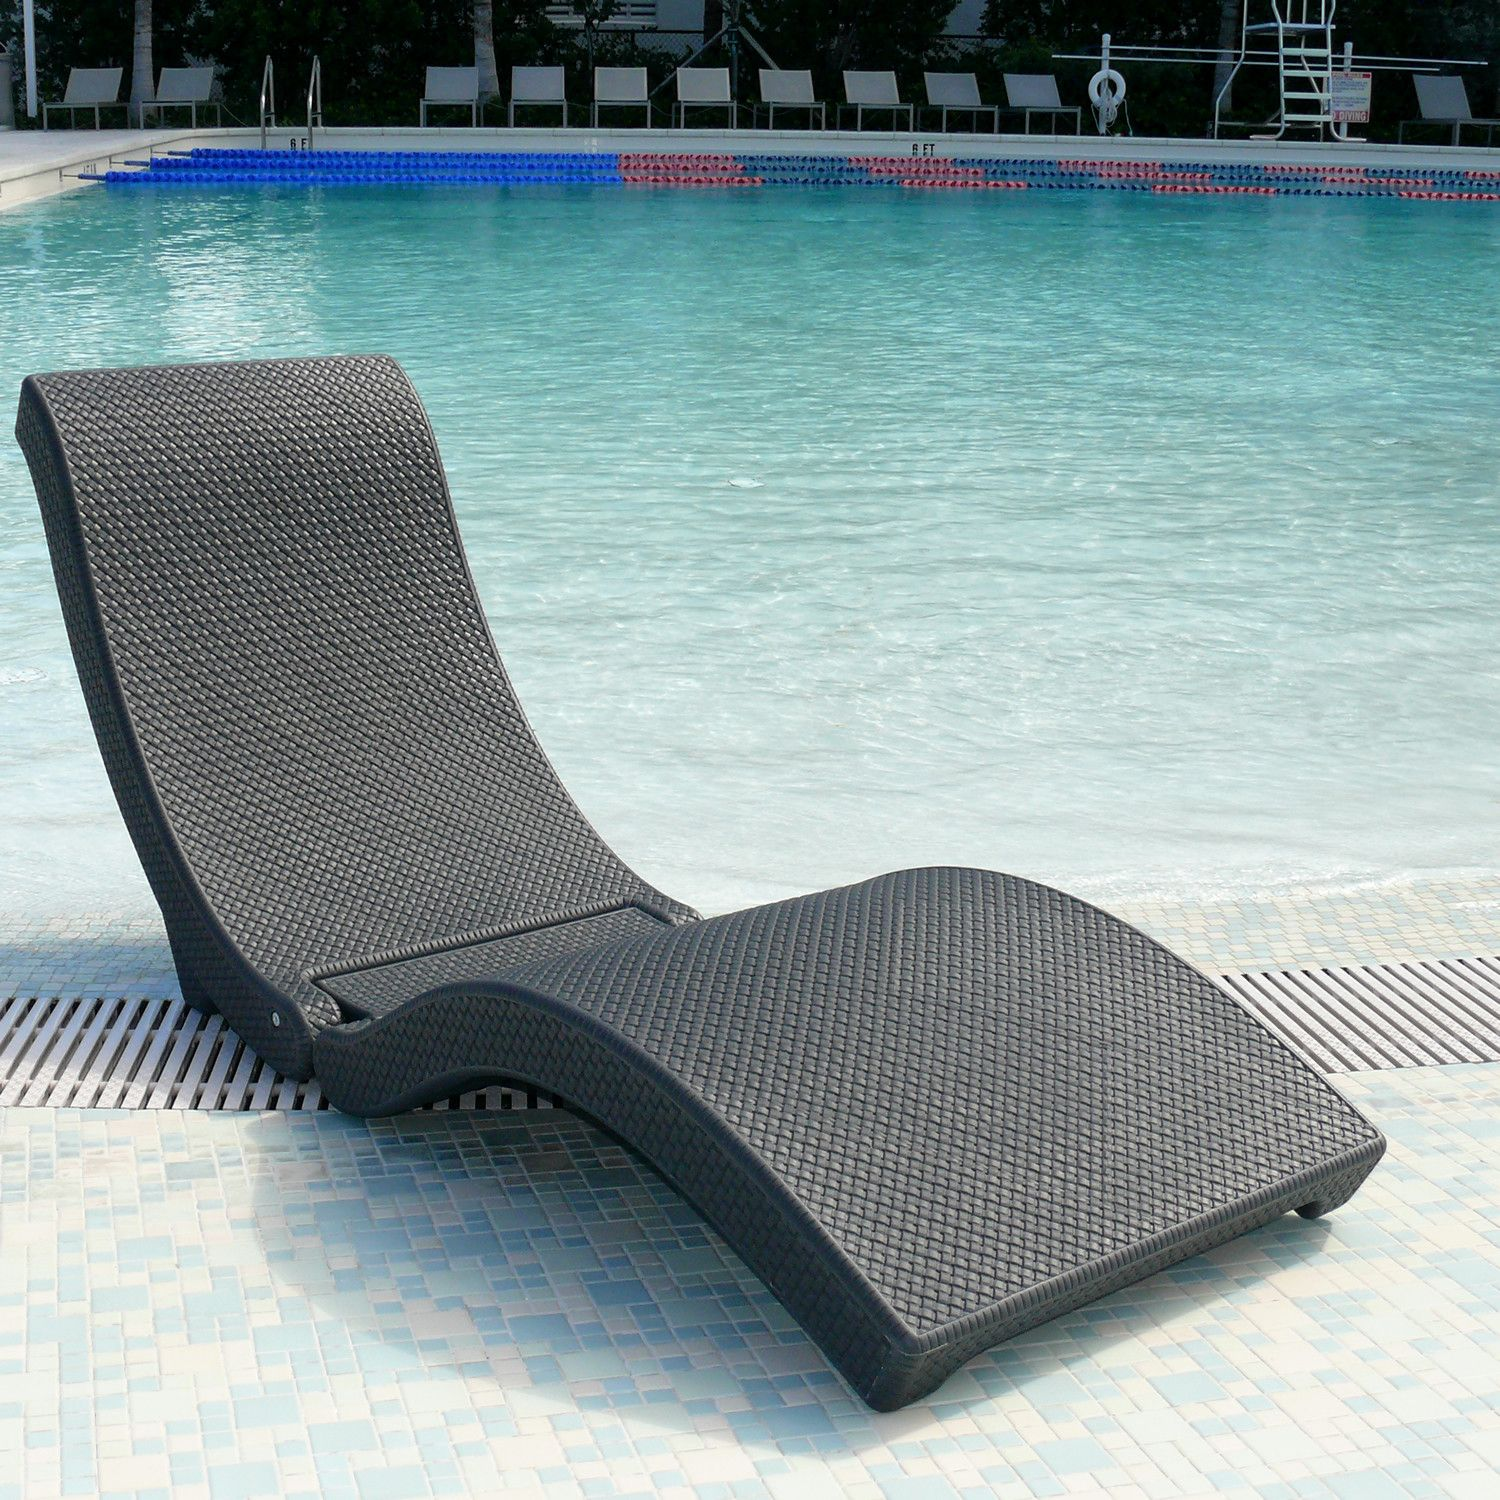 Sensational Plastic Lounge Chairs Pool In 2019 Pool Lounge Chairs Andrewgaddart Wooden Chair Designs For Living Room Andrewgaddartcom